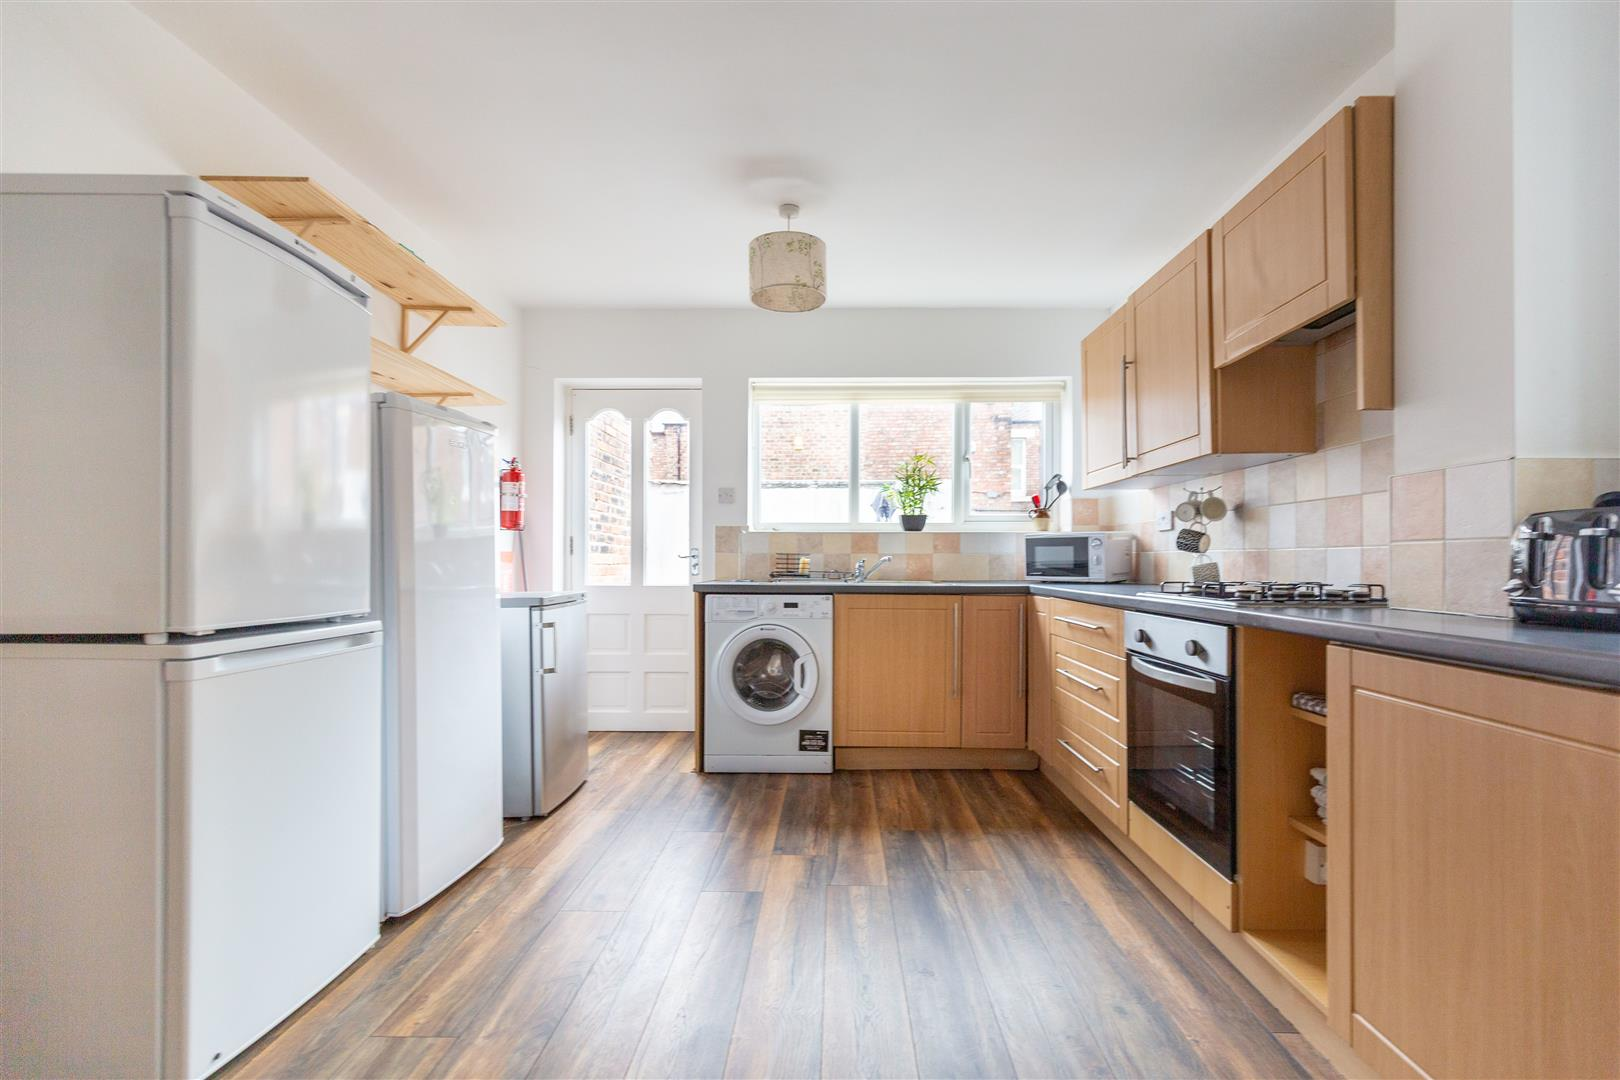 6 bed terraced house to rent in Newcastle Upon Tyne, NE6 5LR 4